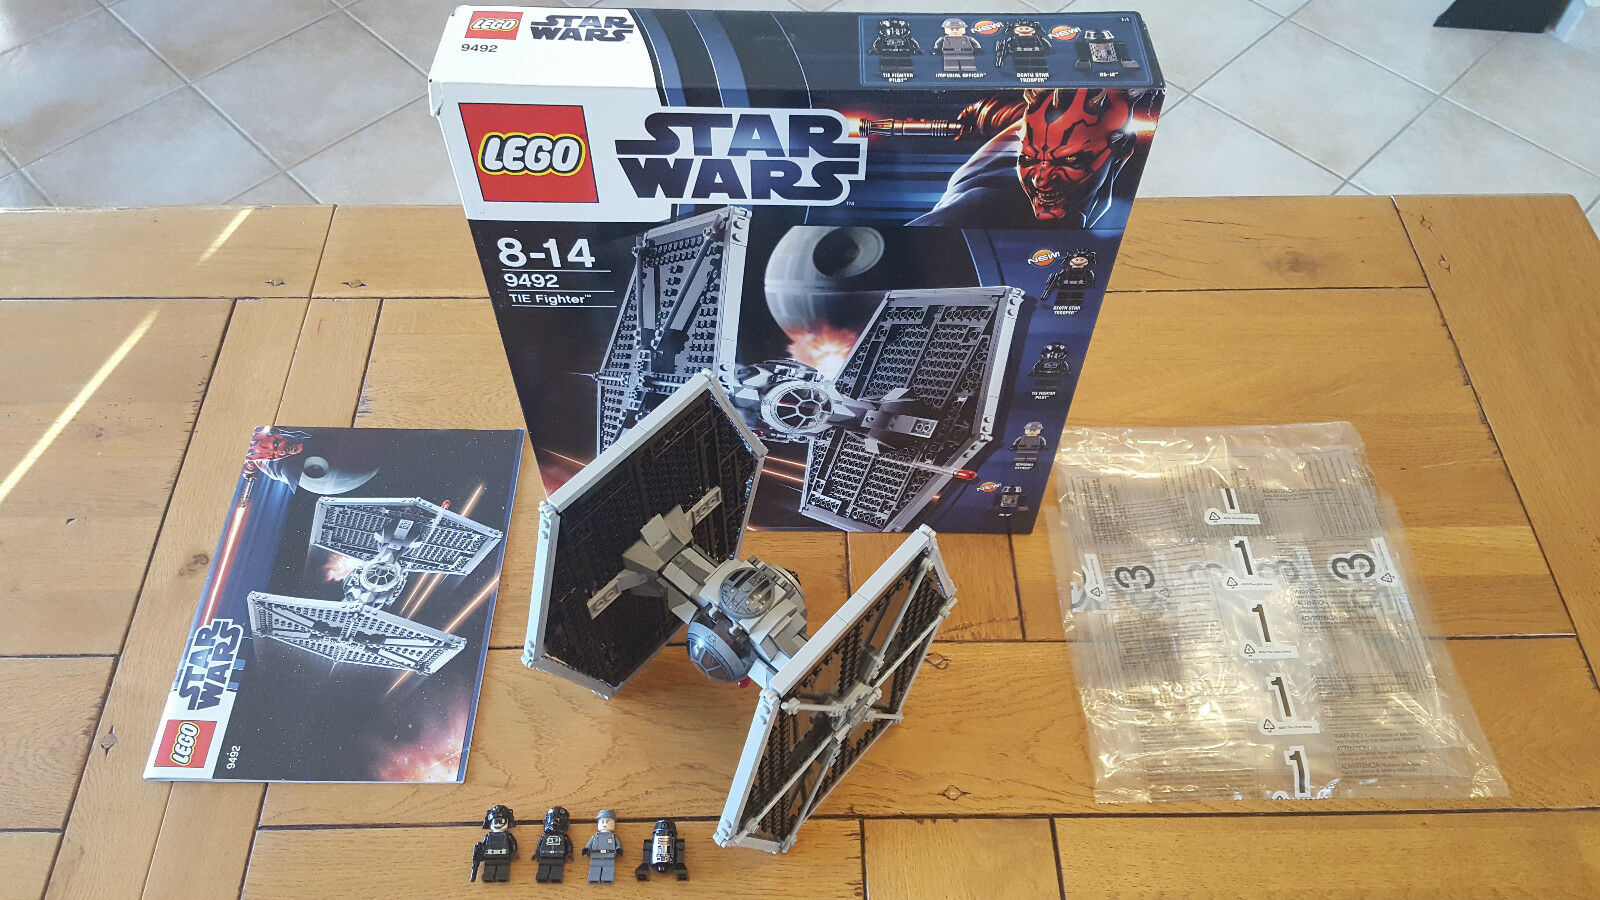 LEGO STAR WARS 9492  TIE Fighter , 100% COMPLET + BOITE, COMME NEUF